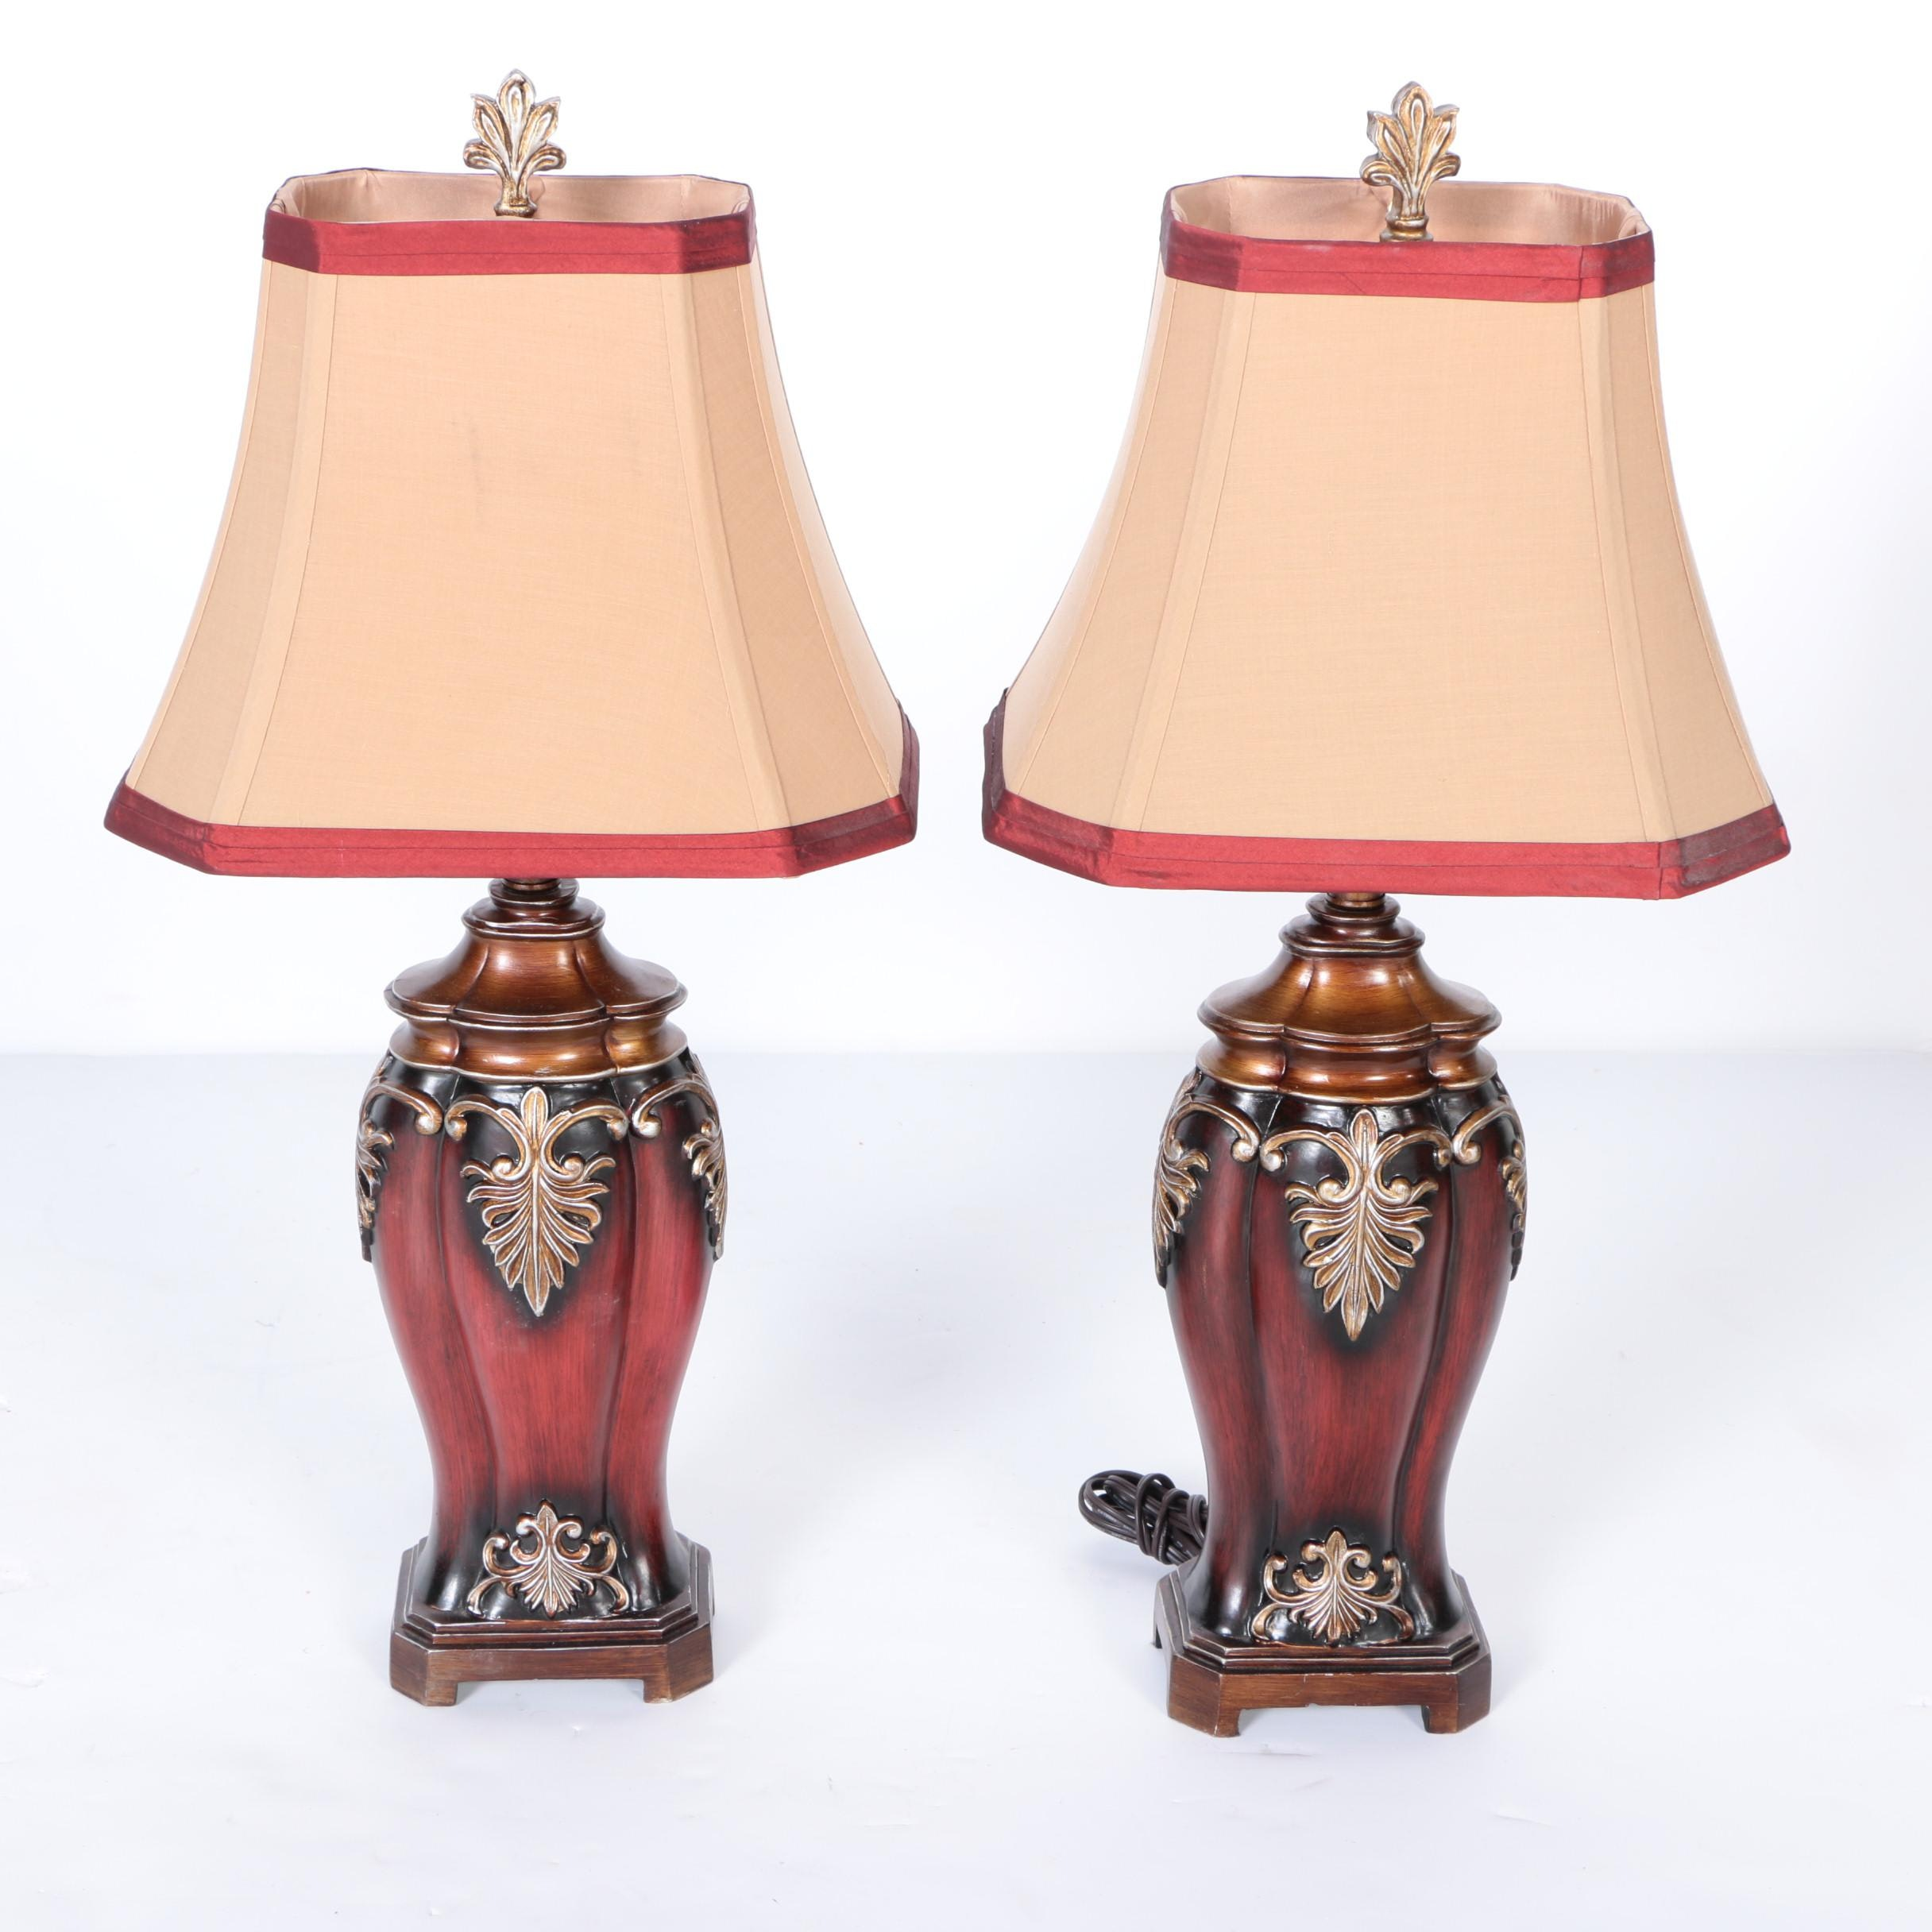 Gold Tone And Burgundy Table Lamps Ebth